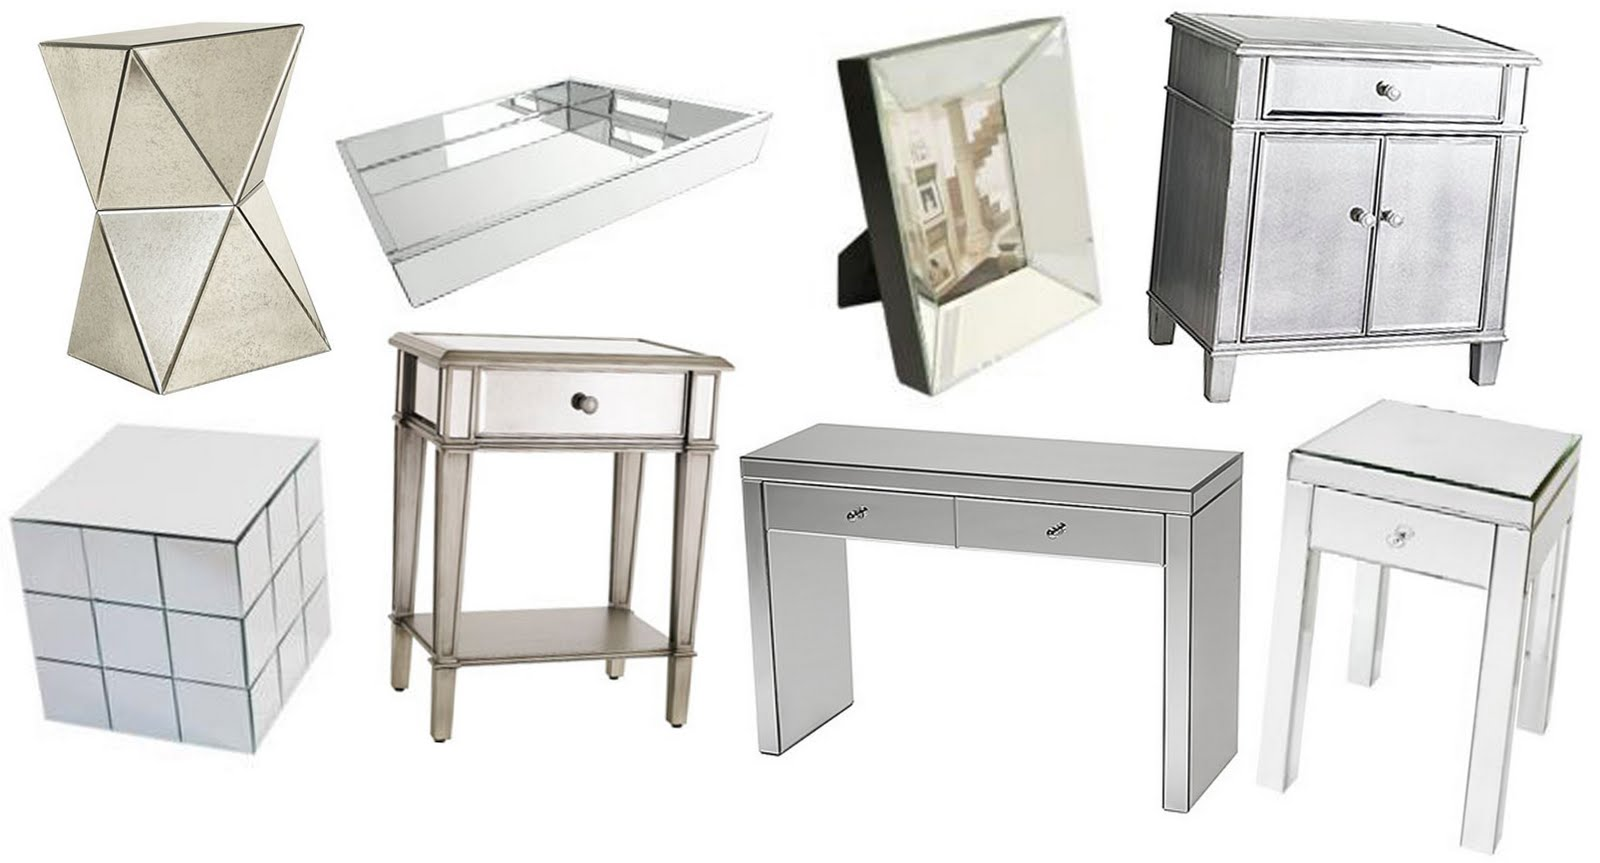 Fascinating Hayworth Vanity for Bedroom Furniture Ideas: Wonderful Hayworth Vanity Collections